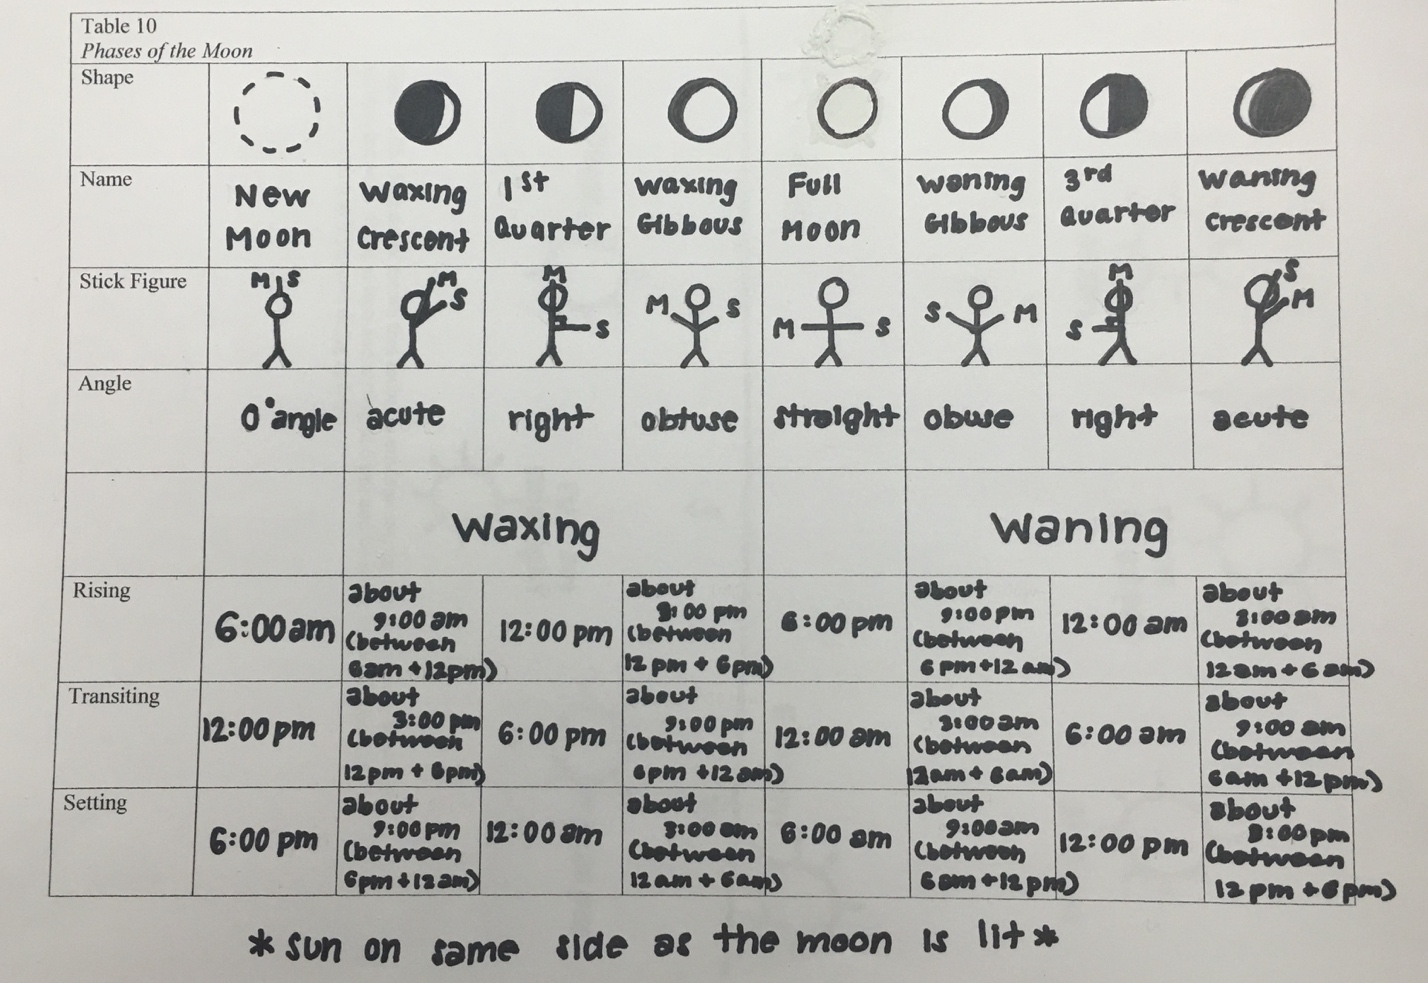 Student's entries in a table summarizing findings about the phases of the Moon